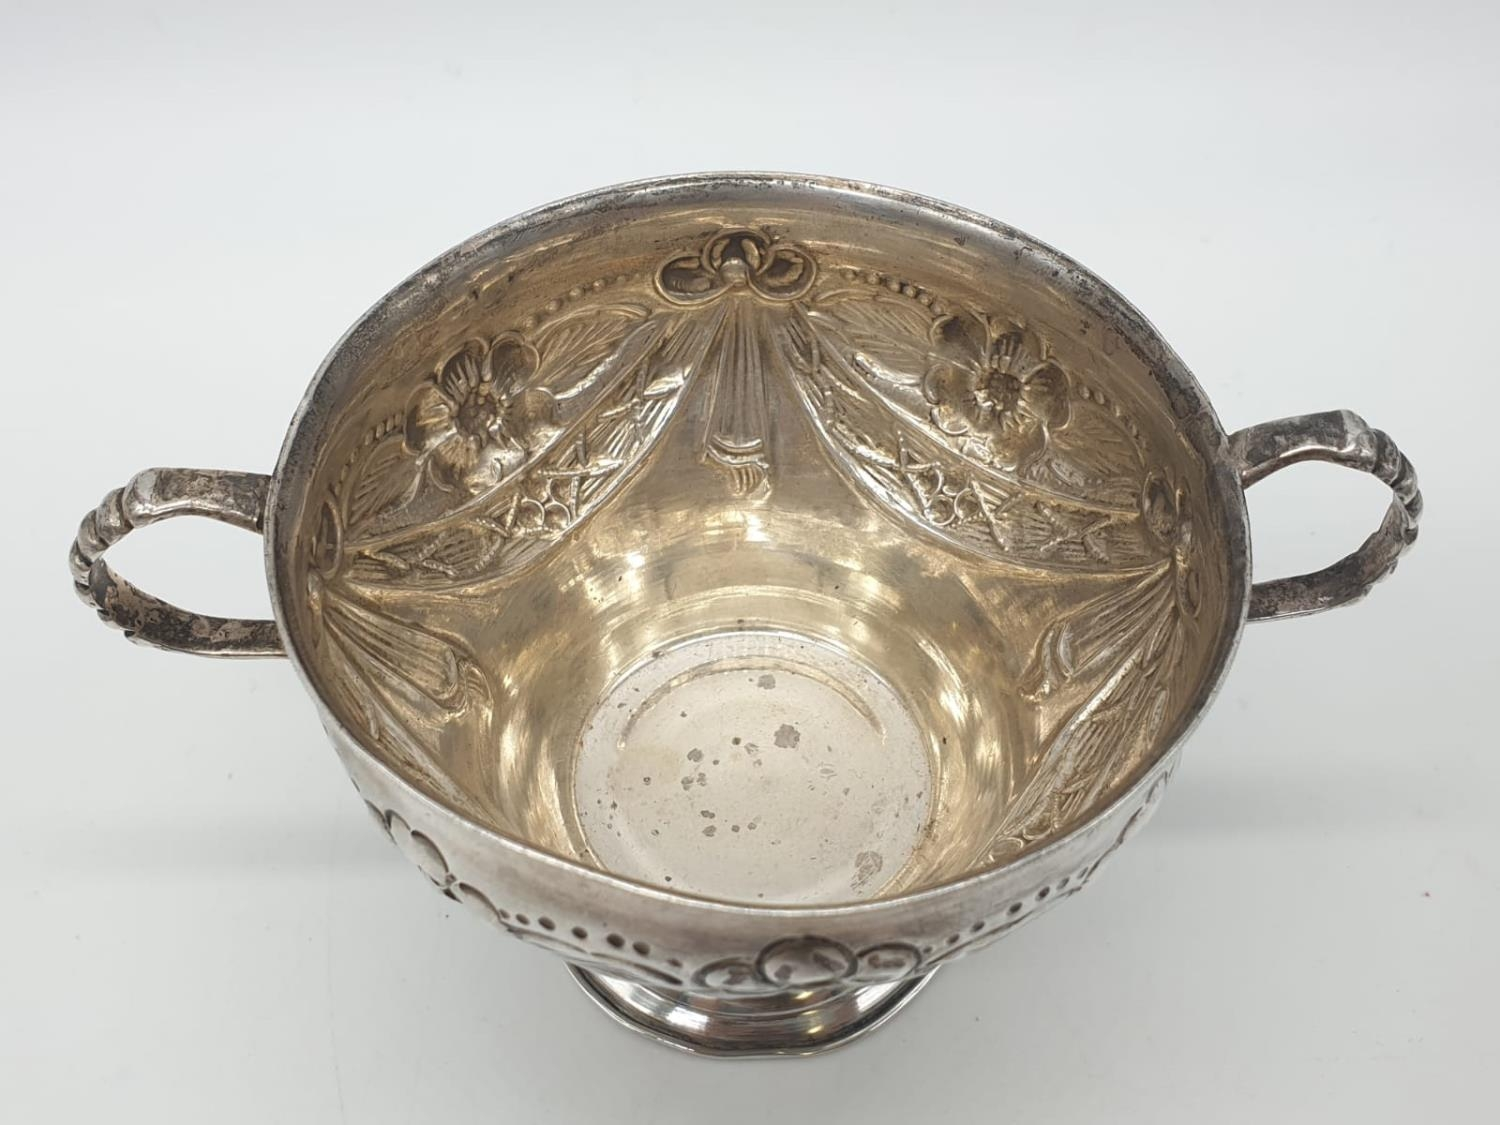 Silver CHALICE with handles. Hand decorated 8cm tall 9cm diameter. 129g - Image 4 of 7